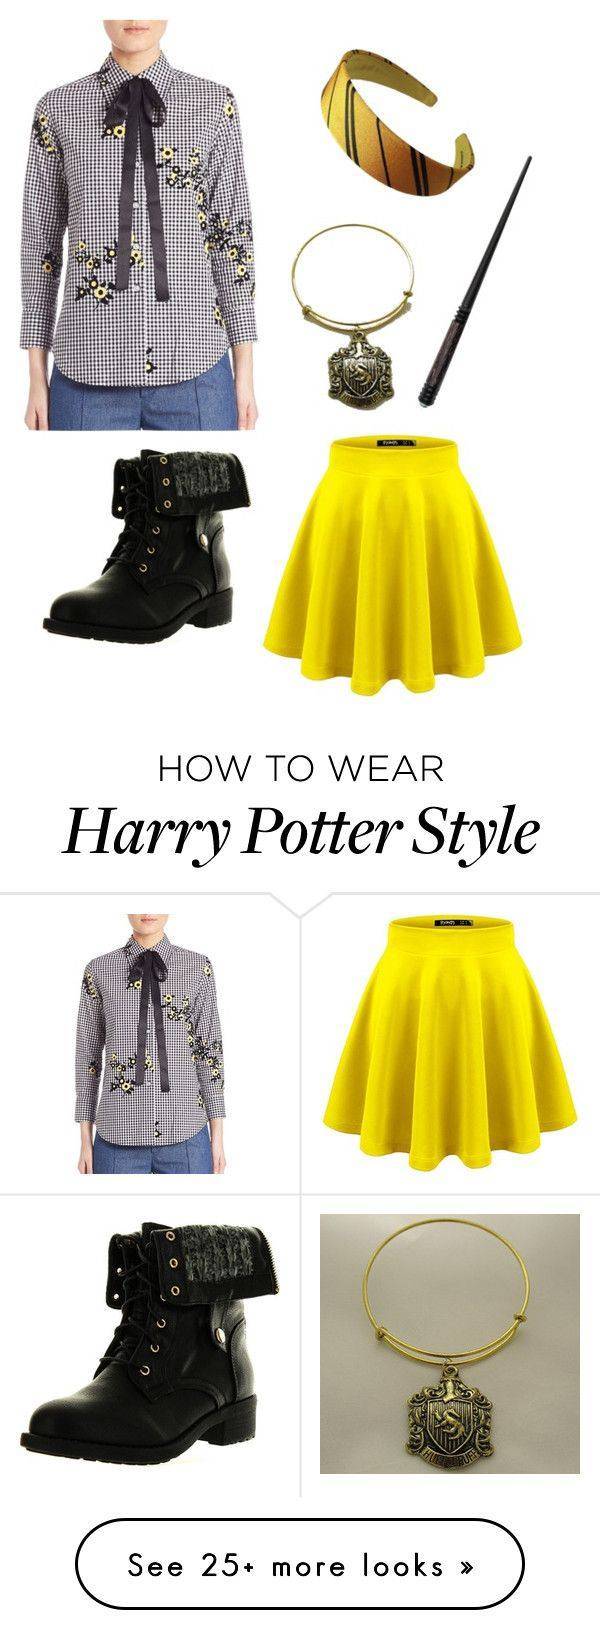 """Hufflepuff"" by bandumb on Polyvore featuring Marc Jacobs, Refresh, harrypotter, hogwarts and Hufflepuff"